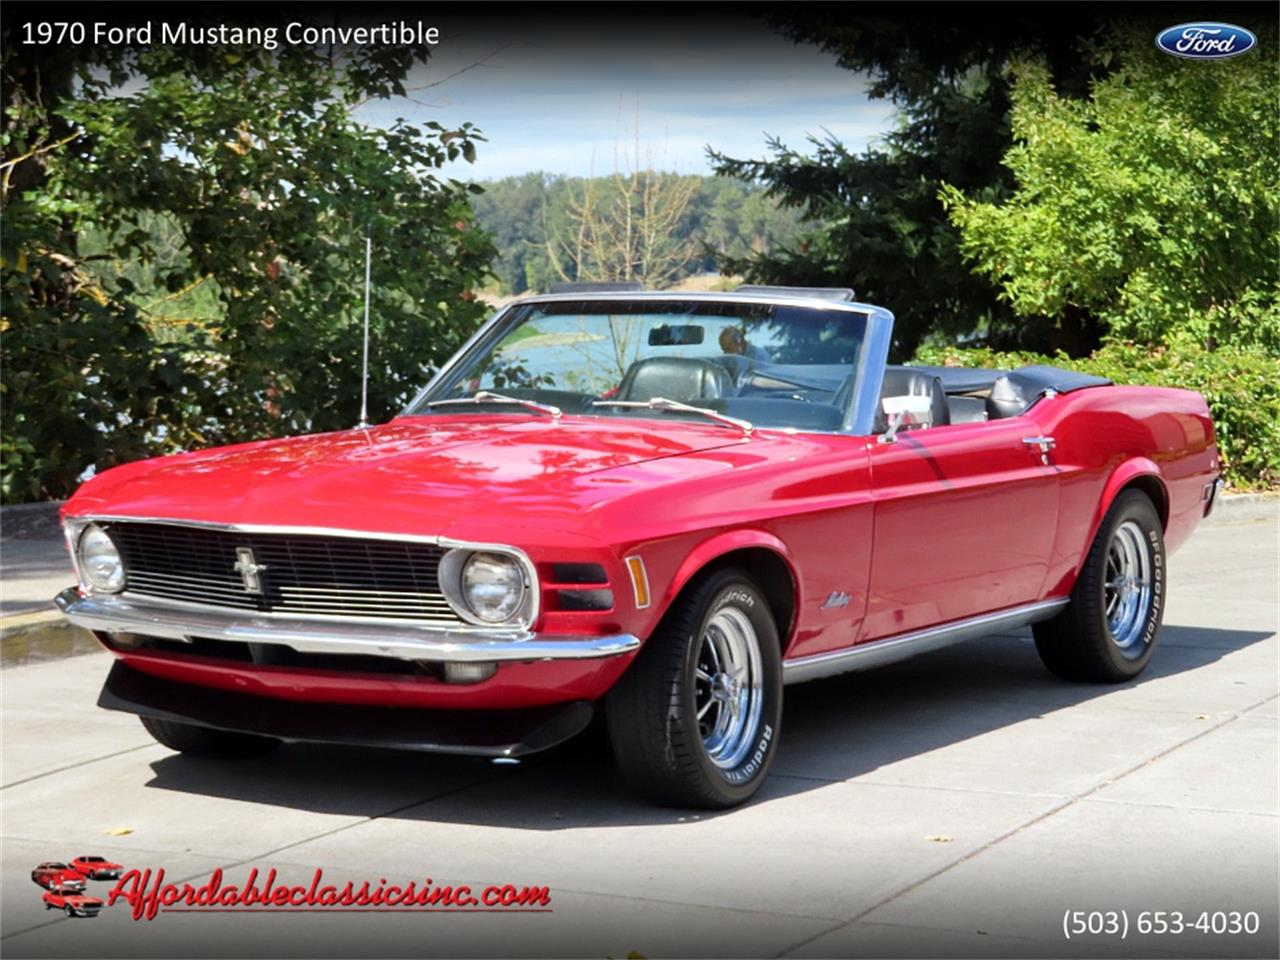 Ford Mustang V8 1970 prix tout compris 1970